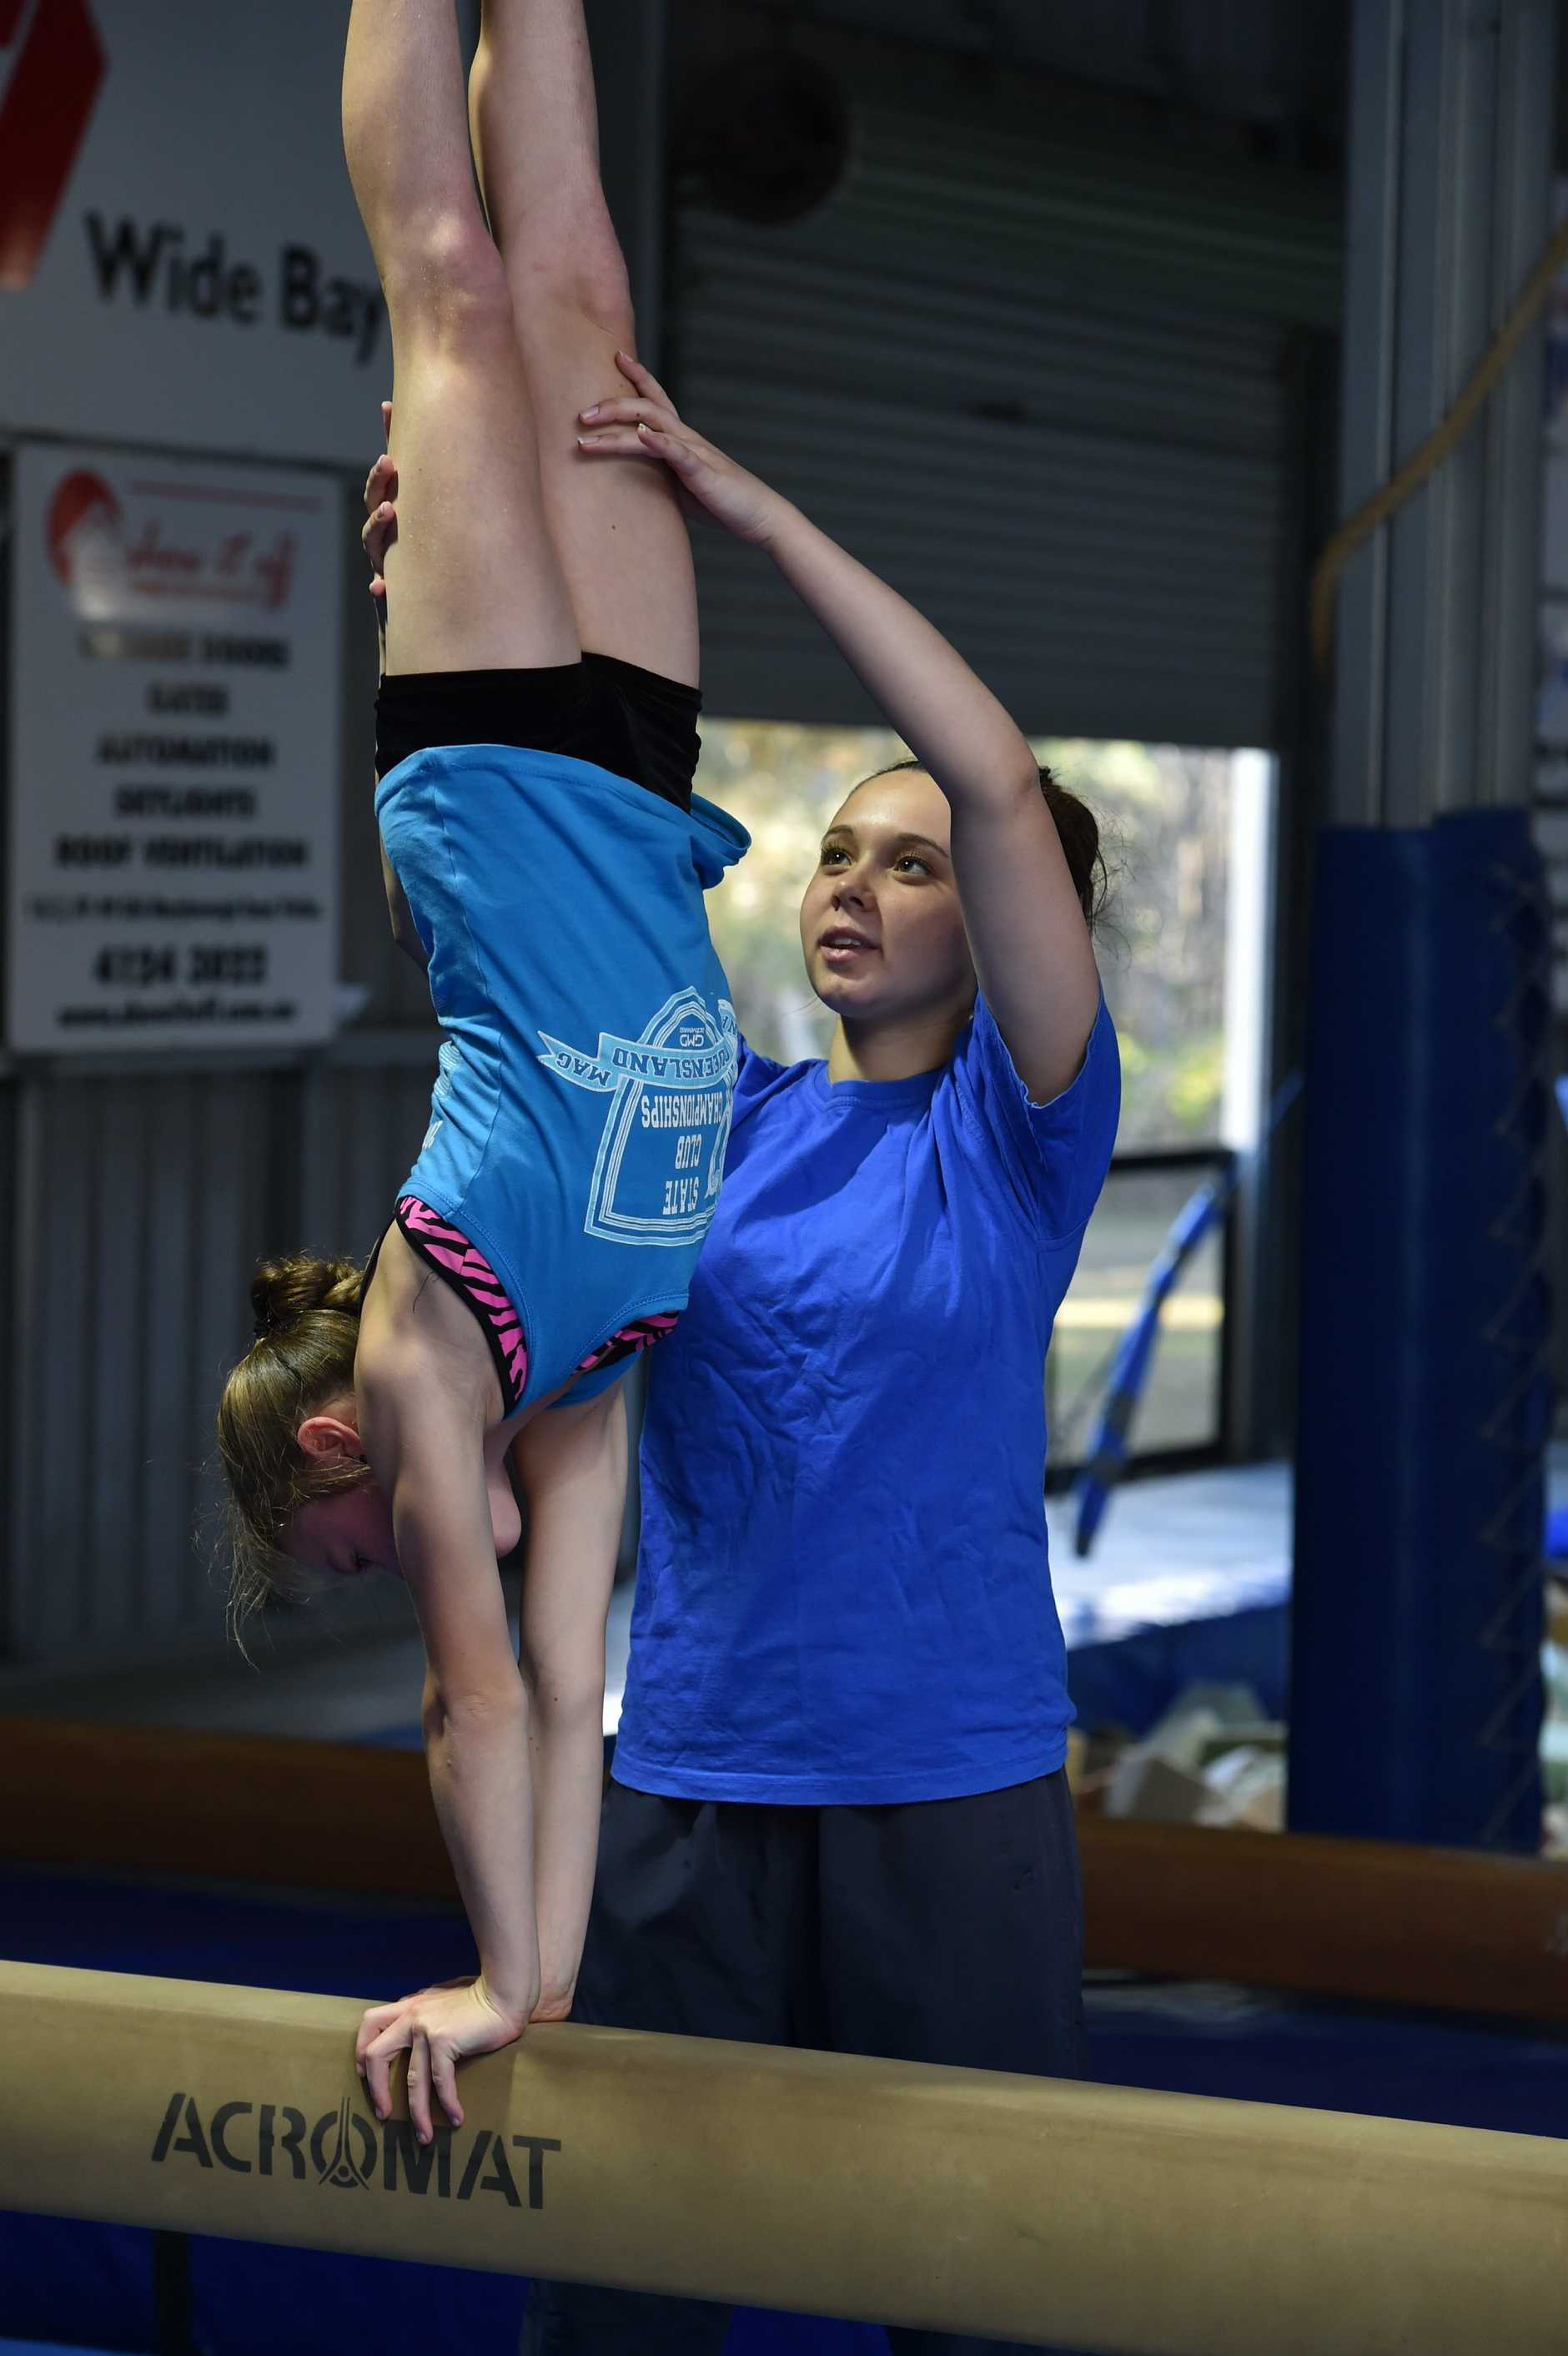 Wide Bay Gymnastics Club - trainer Maddison Beel working with Mia Wright.